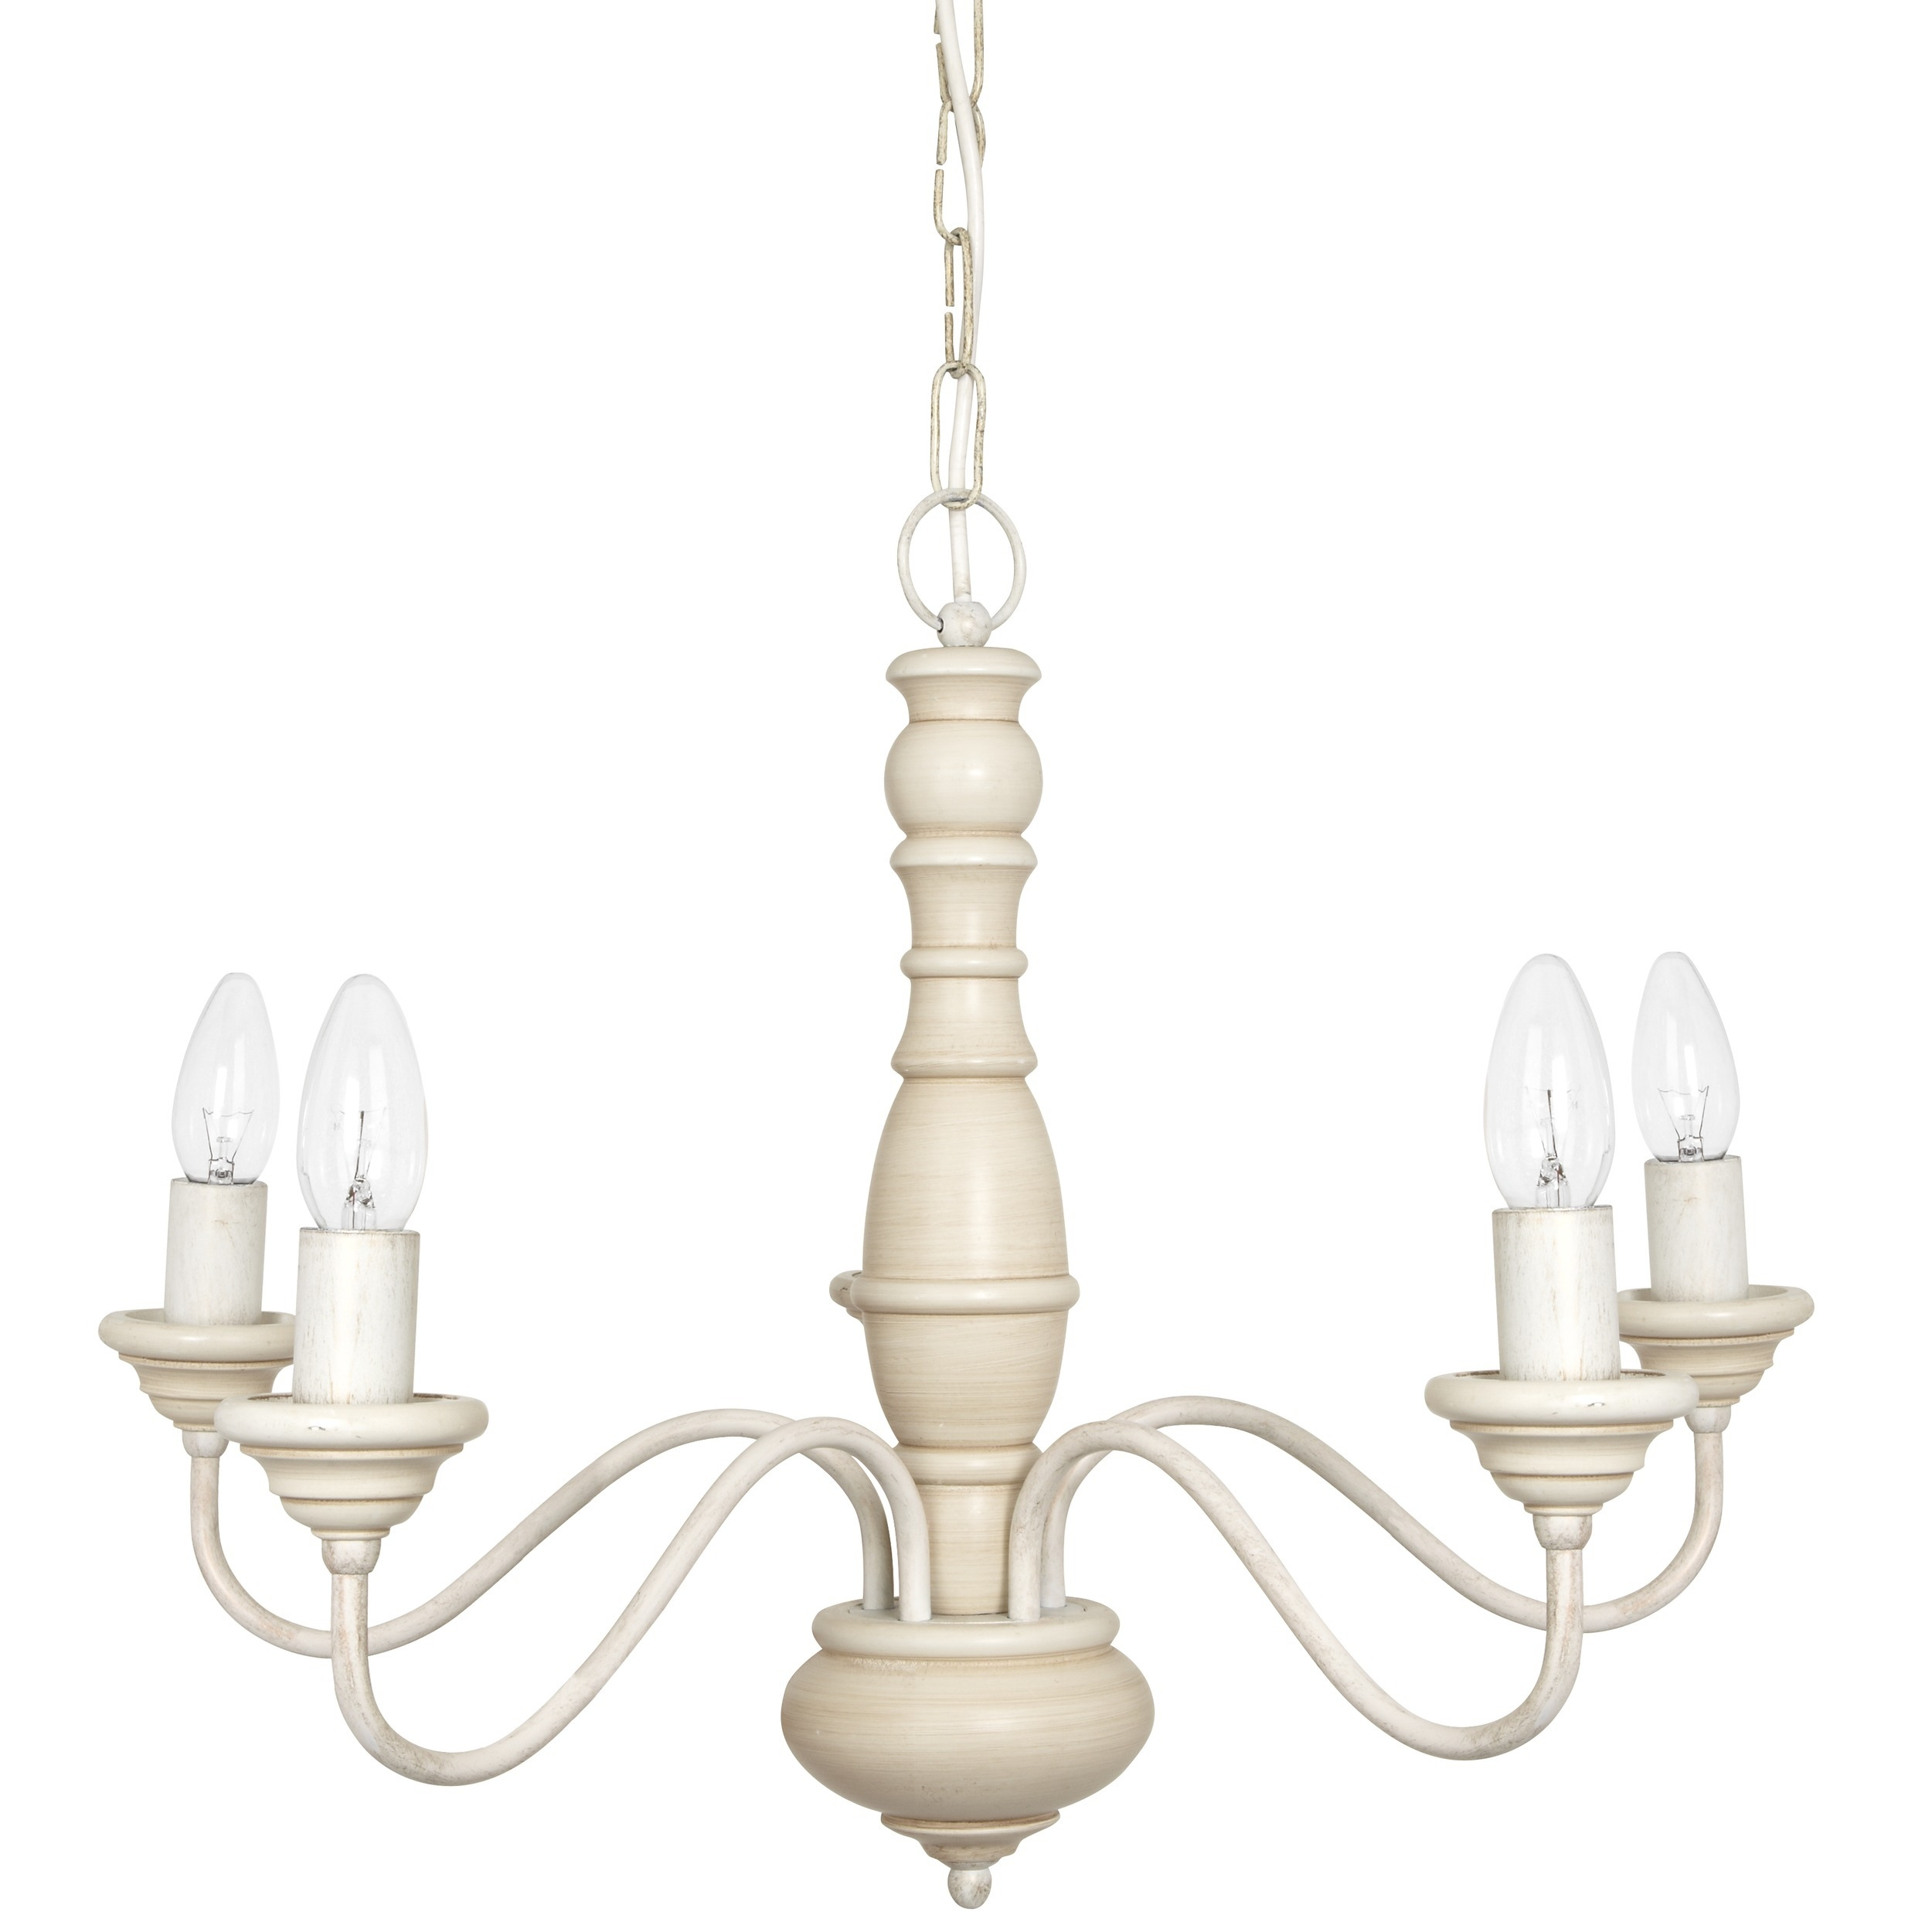 Chella Cream 3 Light Chandelier At Laura Ashley Regarding Cream Chandelier Lights (#4 of 12)